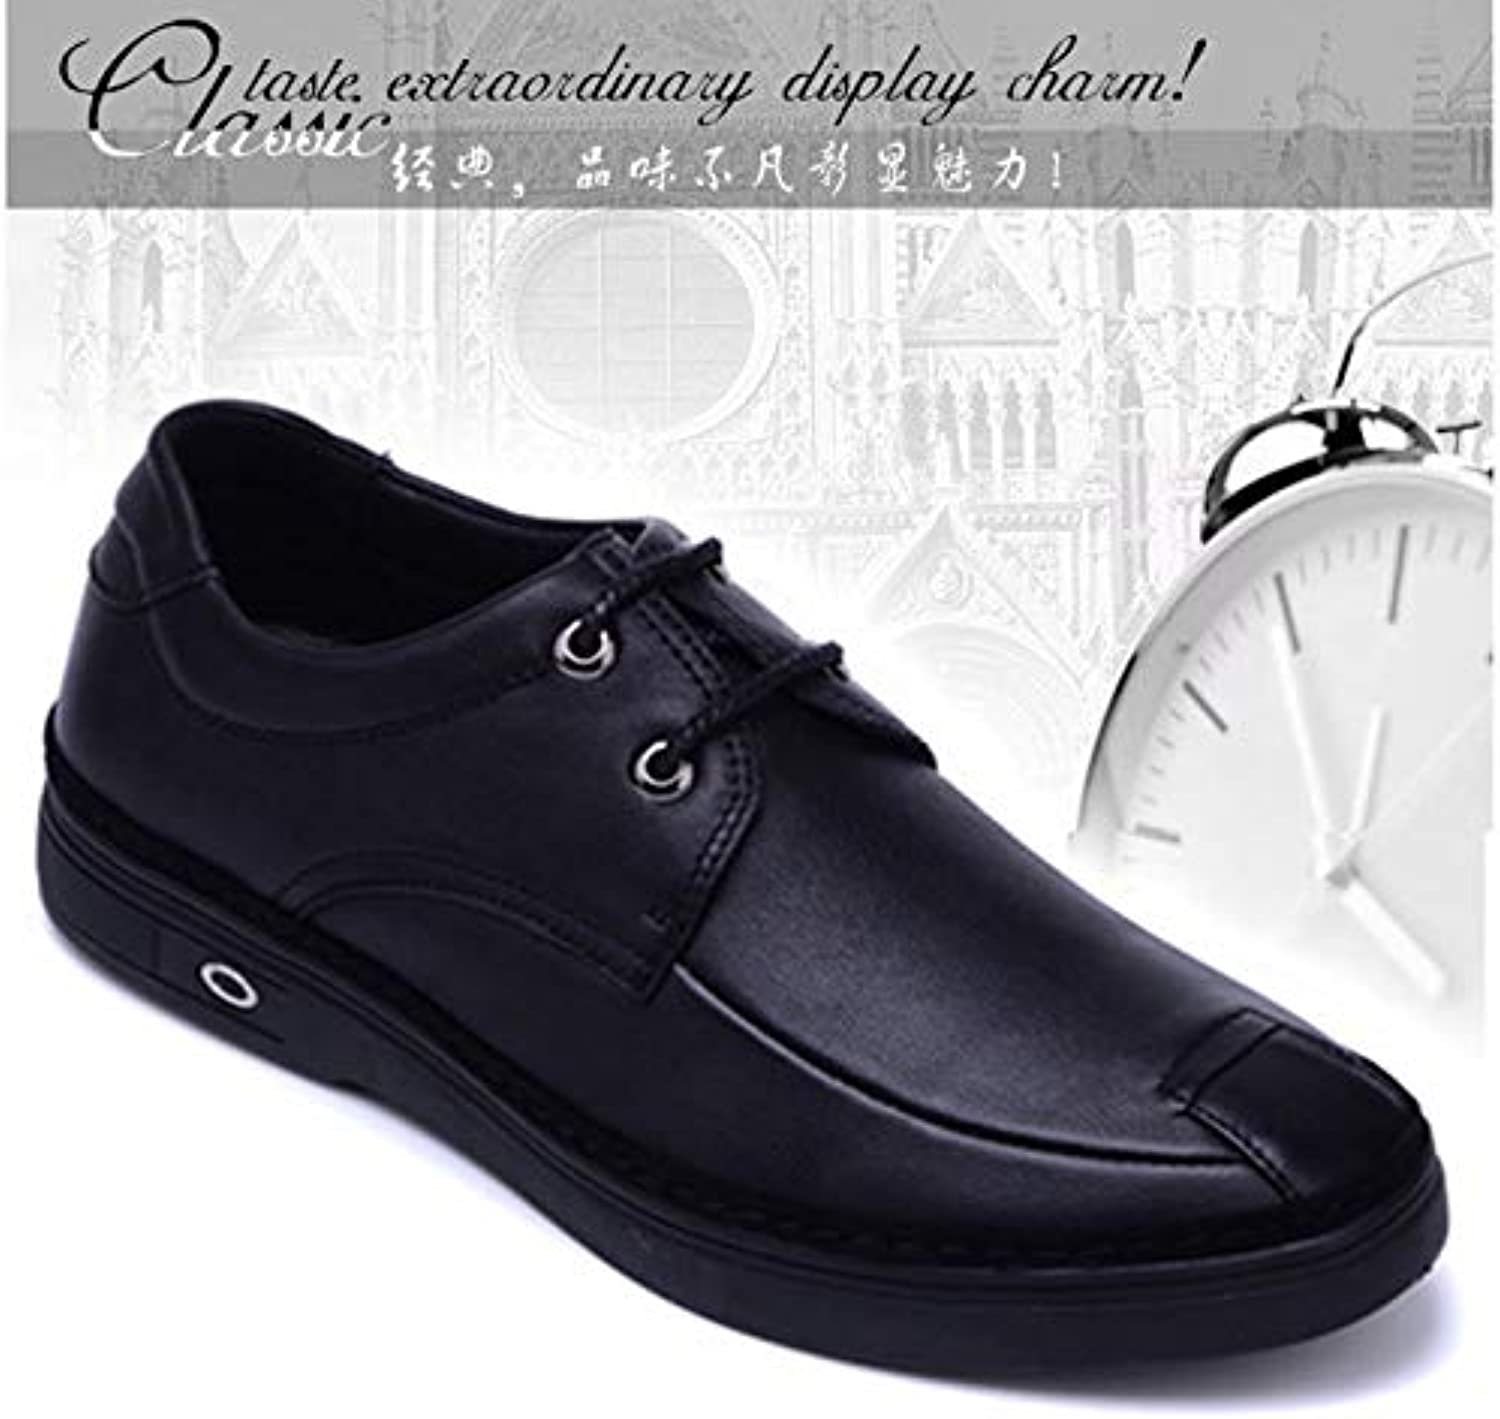 LOVDRAM Men'S shoes Leather Men'S shoes Business Casual shoes Leather shoes With Men'S shoes Autumn And Winter New Recommended